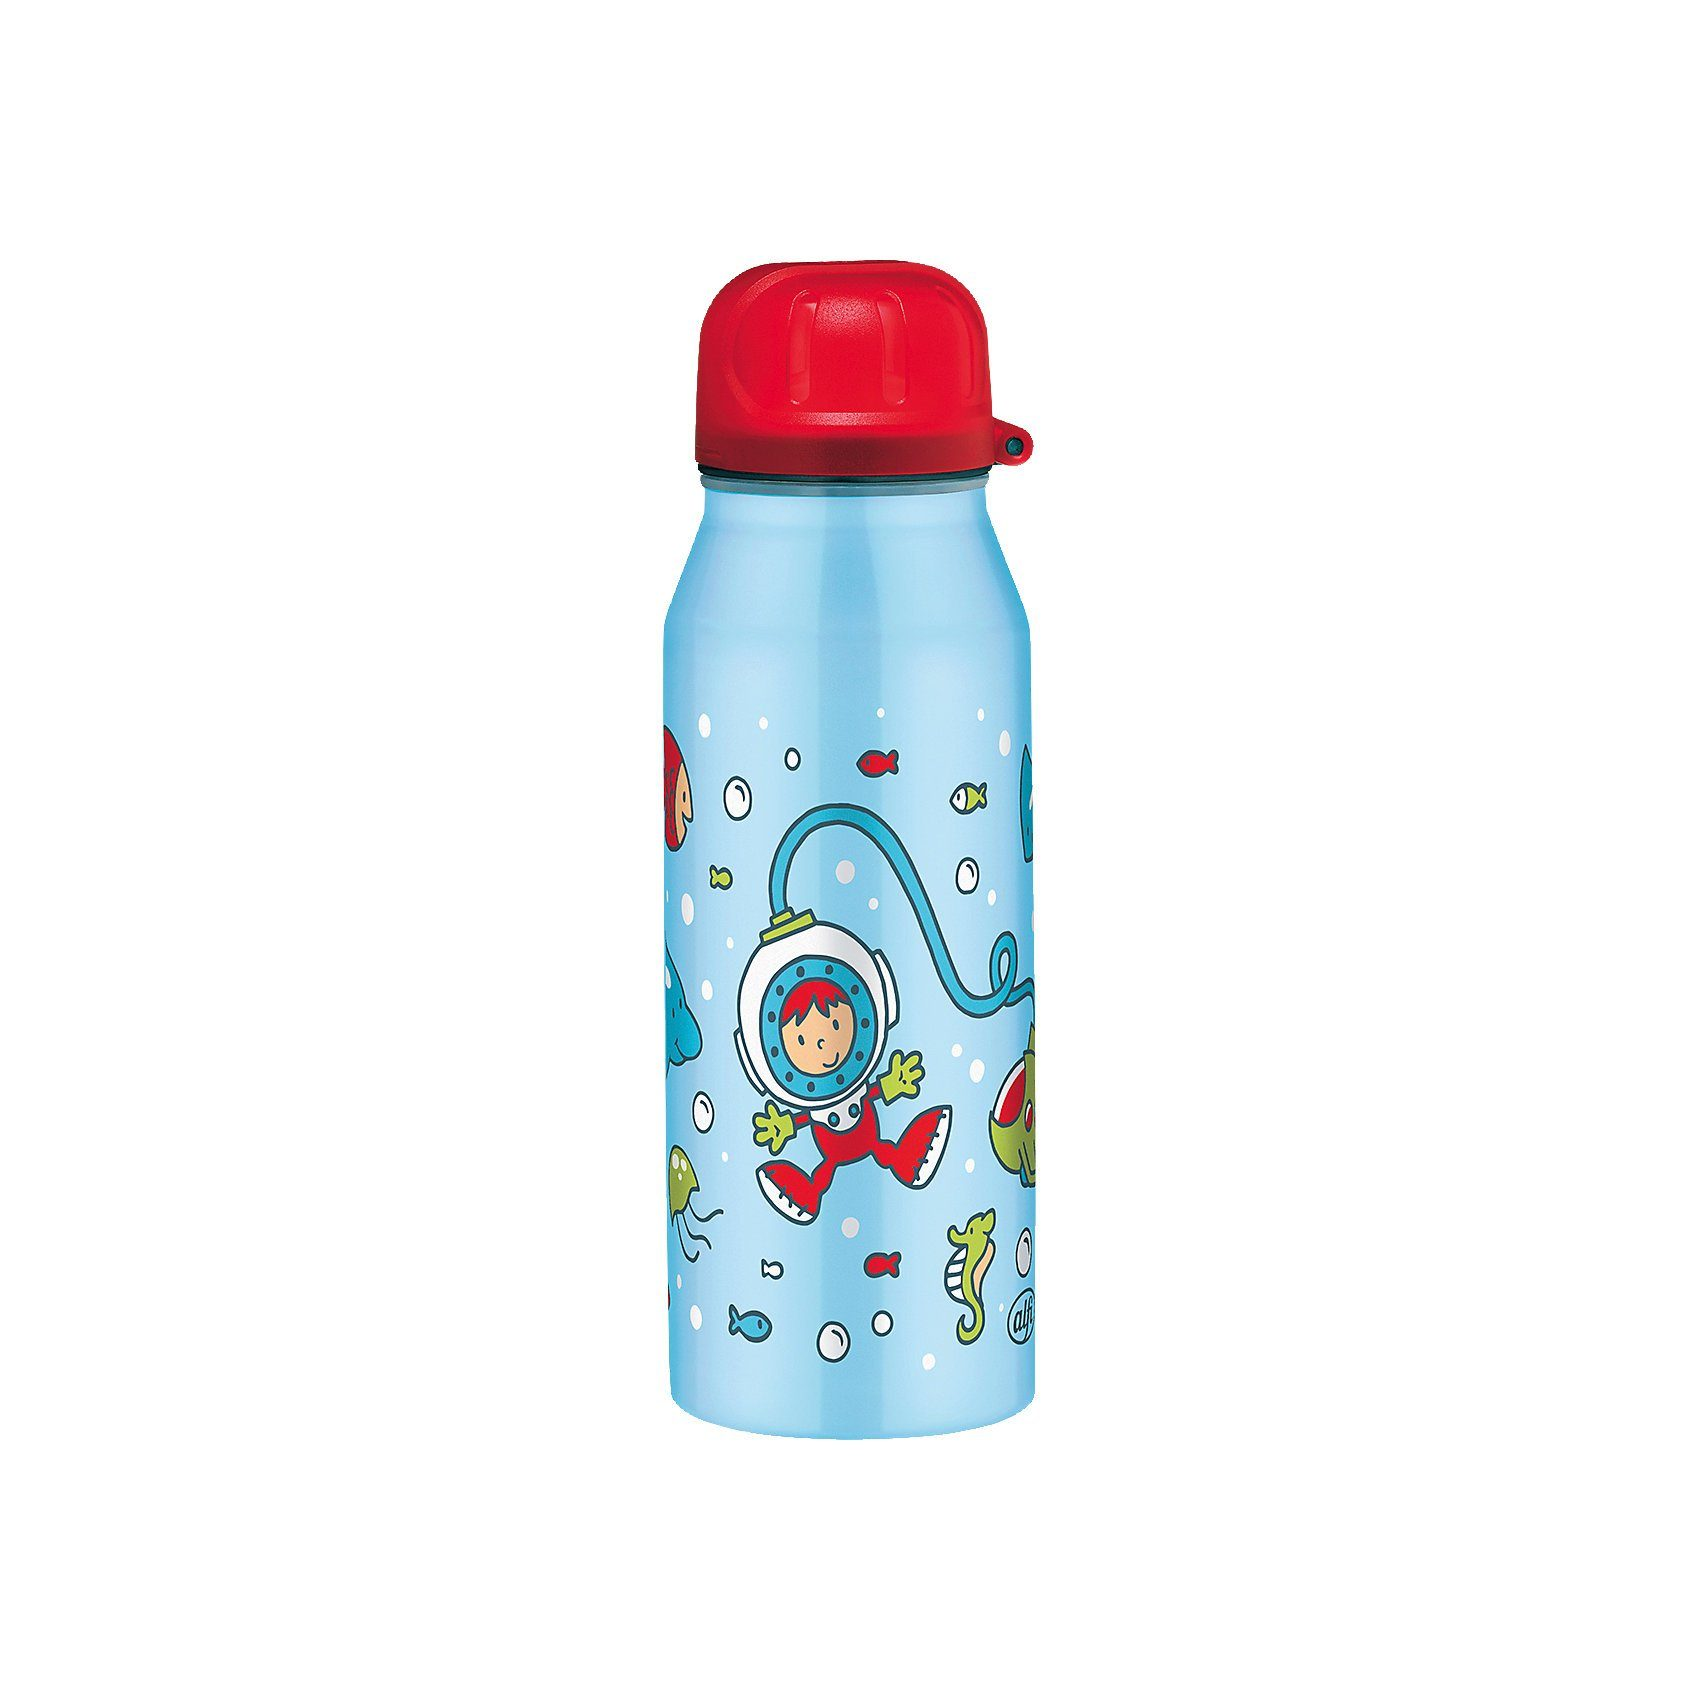 Alfi Isolier-Trinkflasche isoBottle Taucher, 350 ml